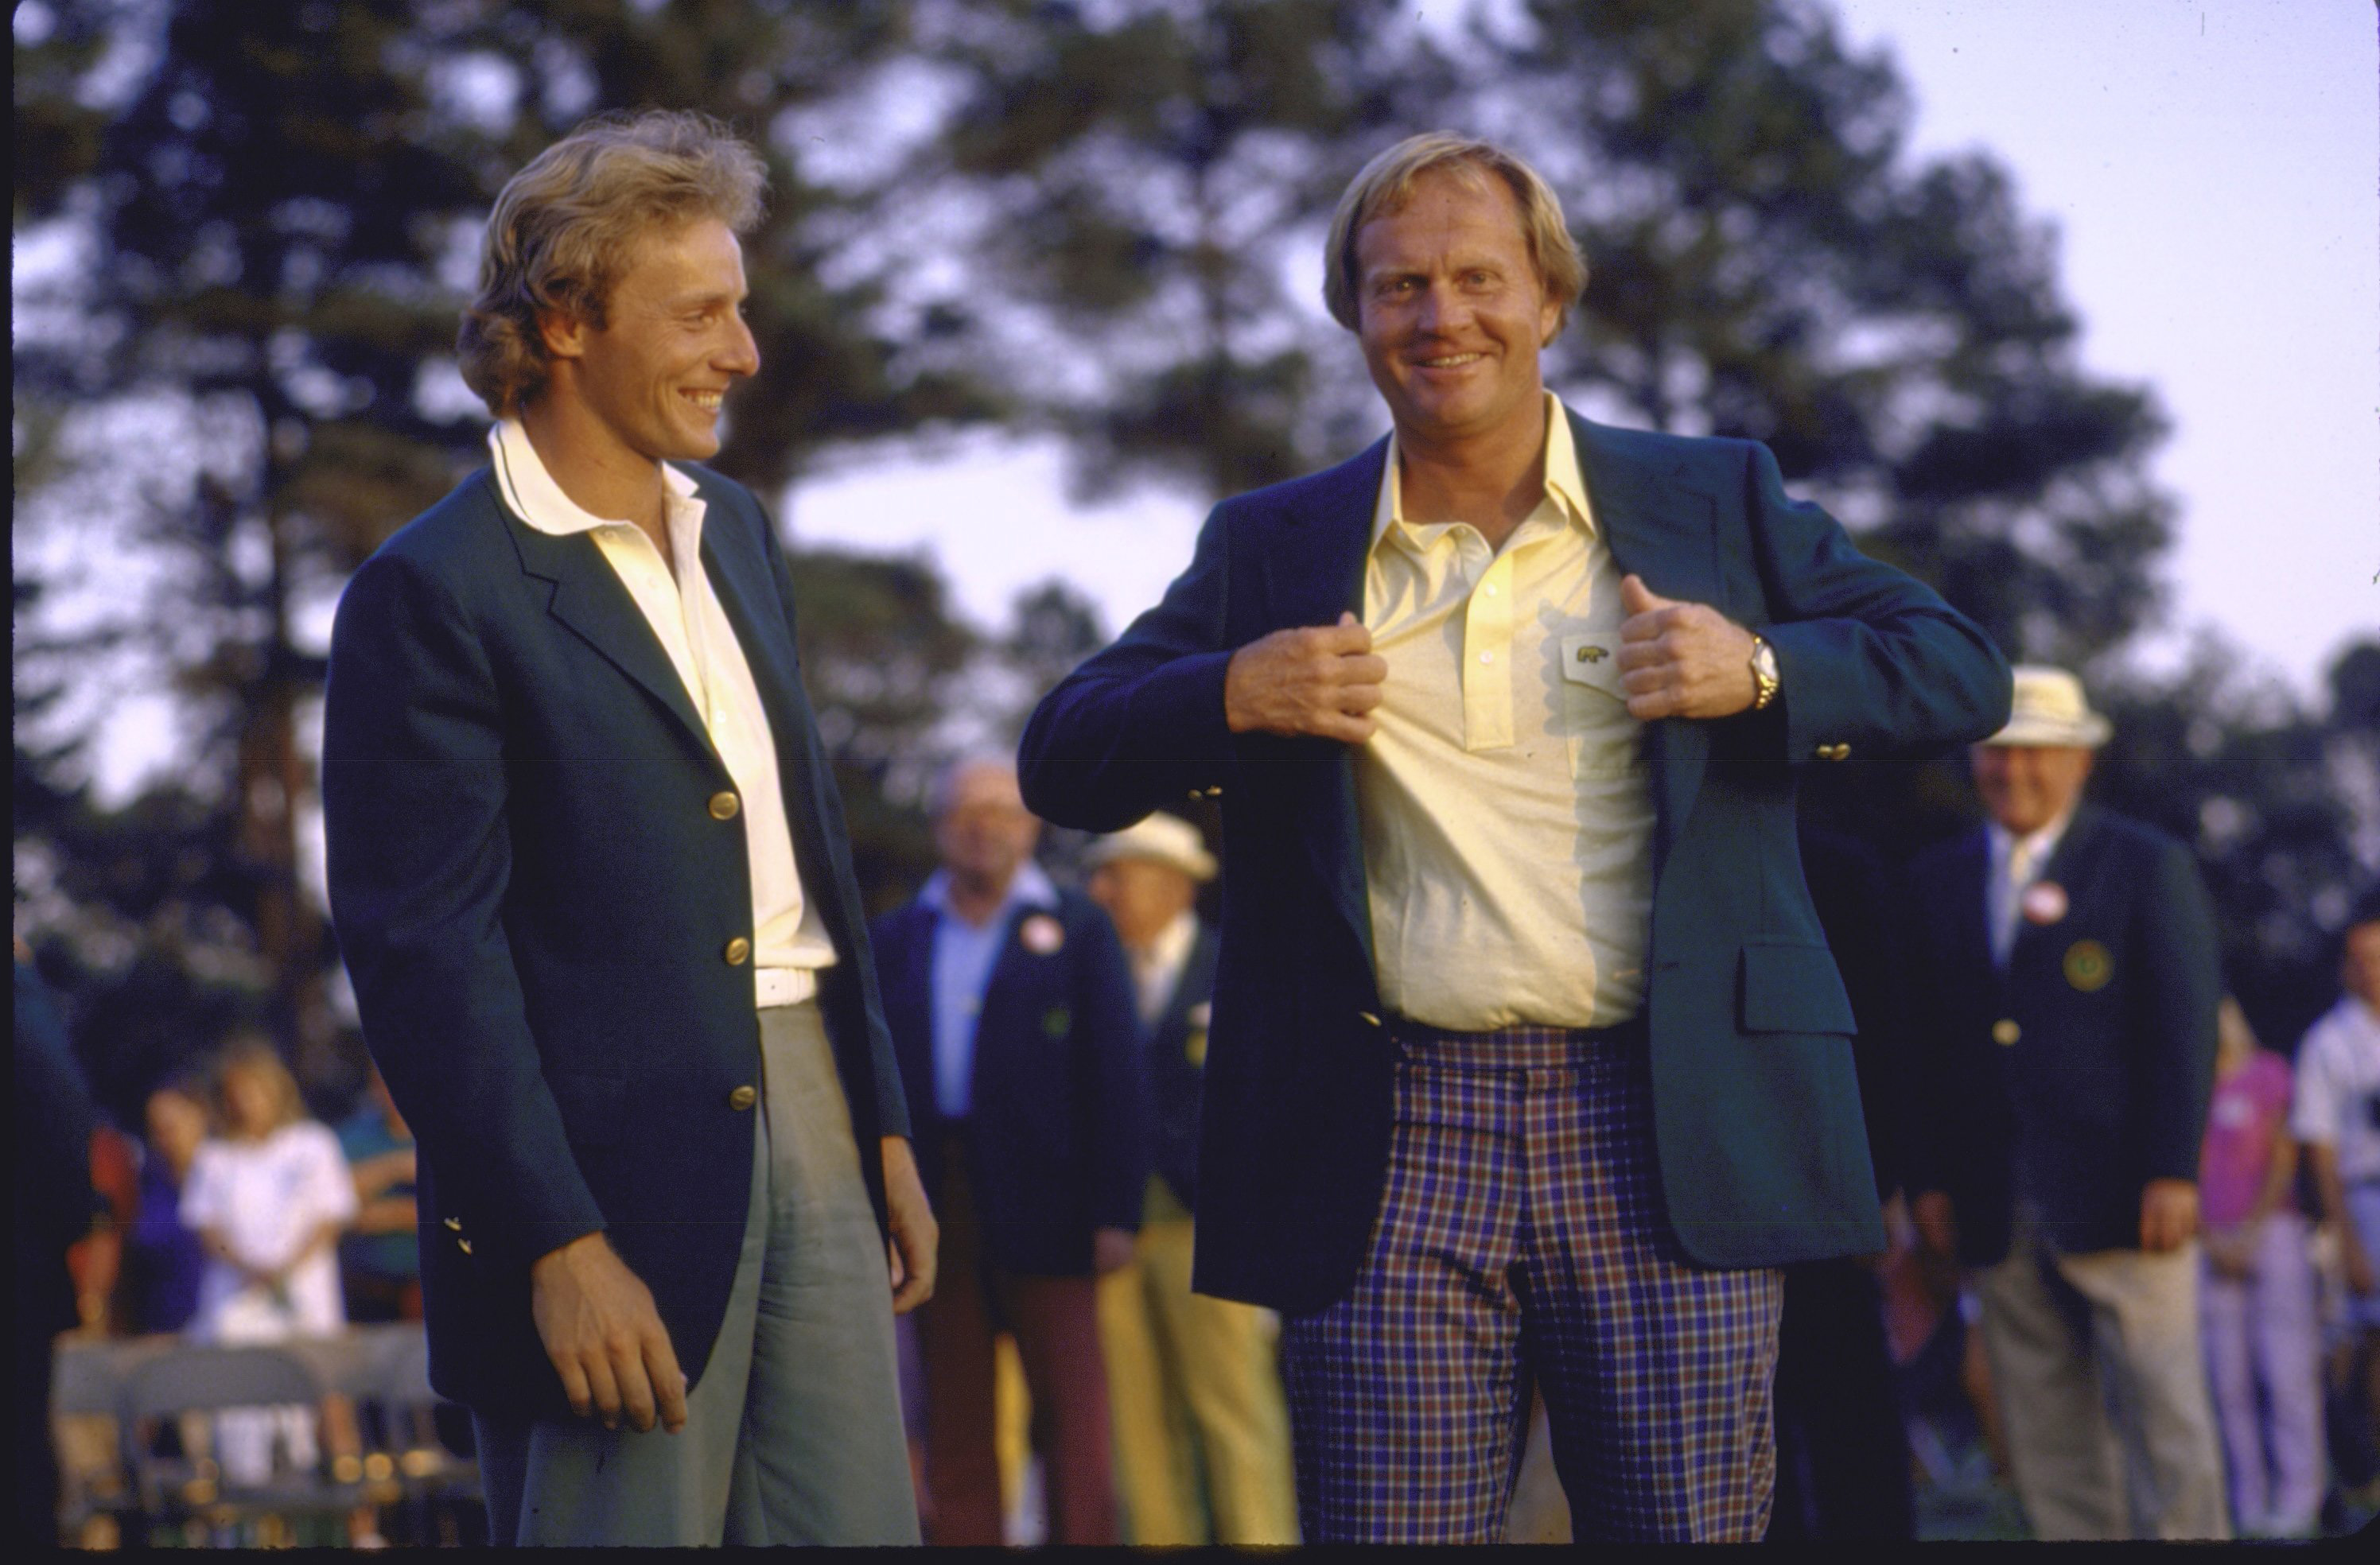 Jack Nicklaus and Bernard Langer at the 1986 Masters after Nicklaus' last major championship.